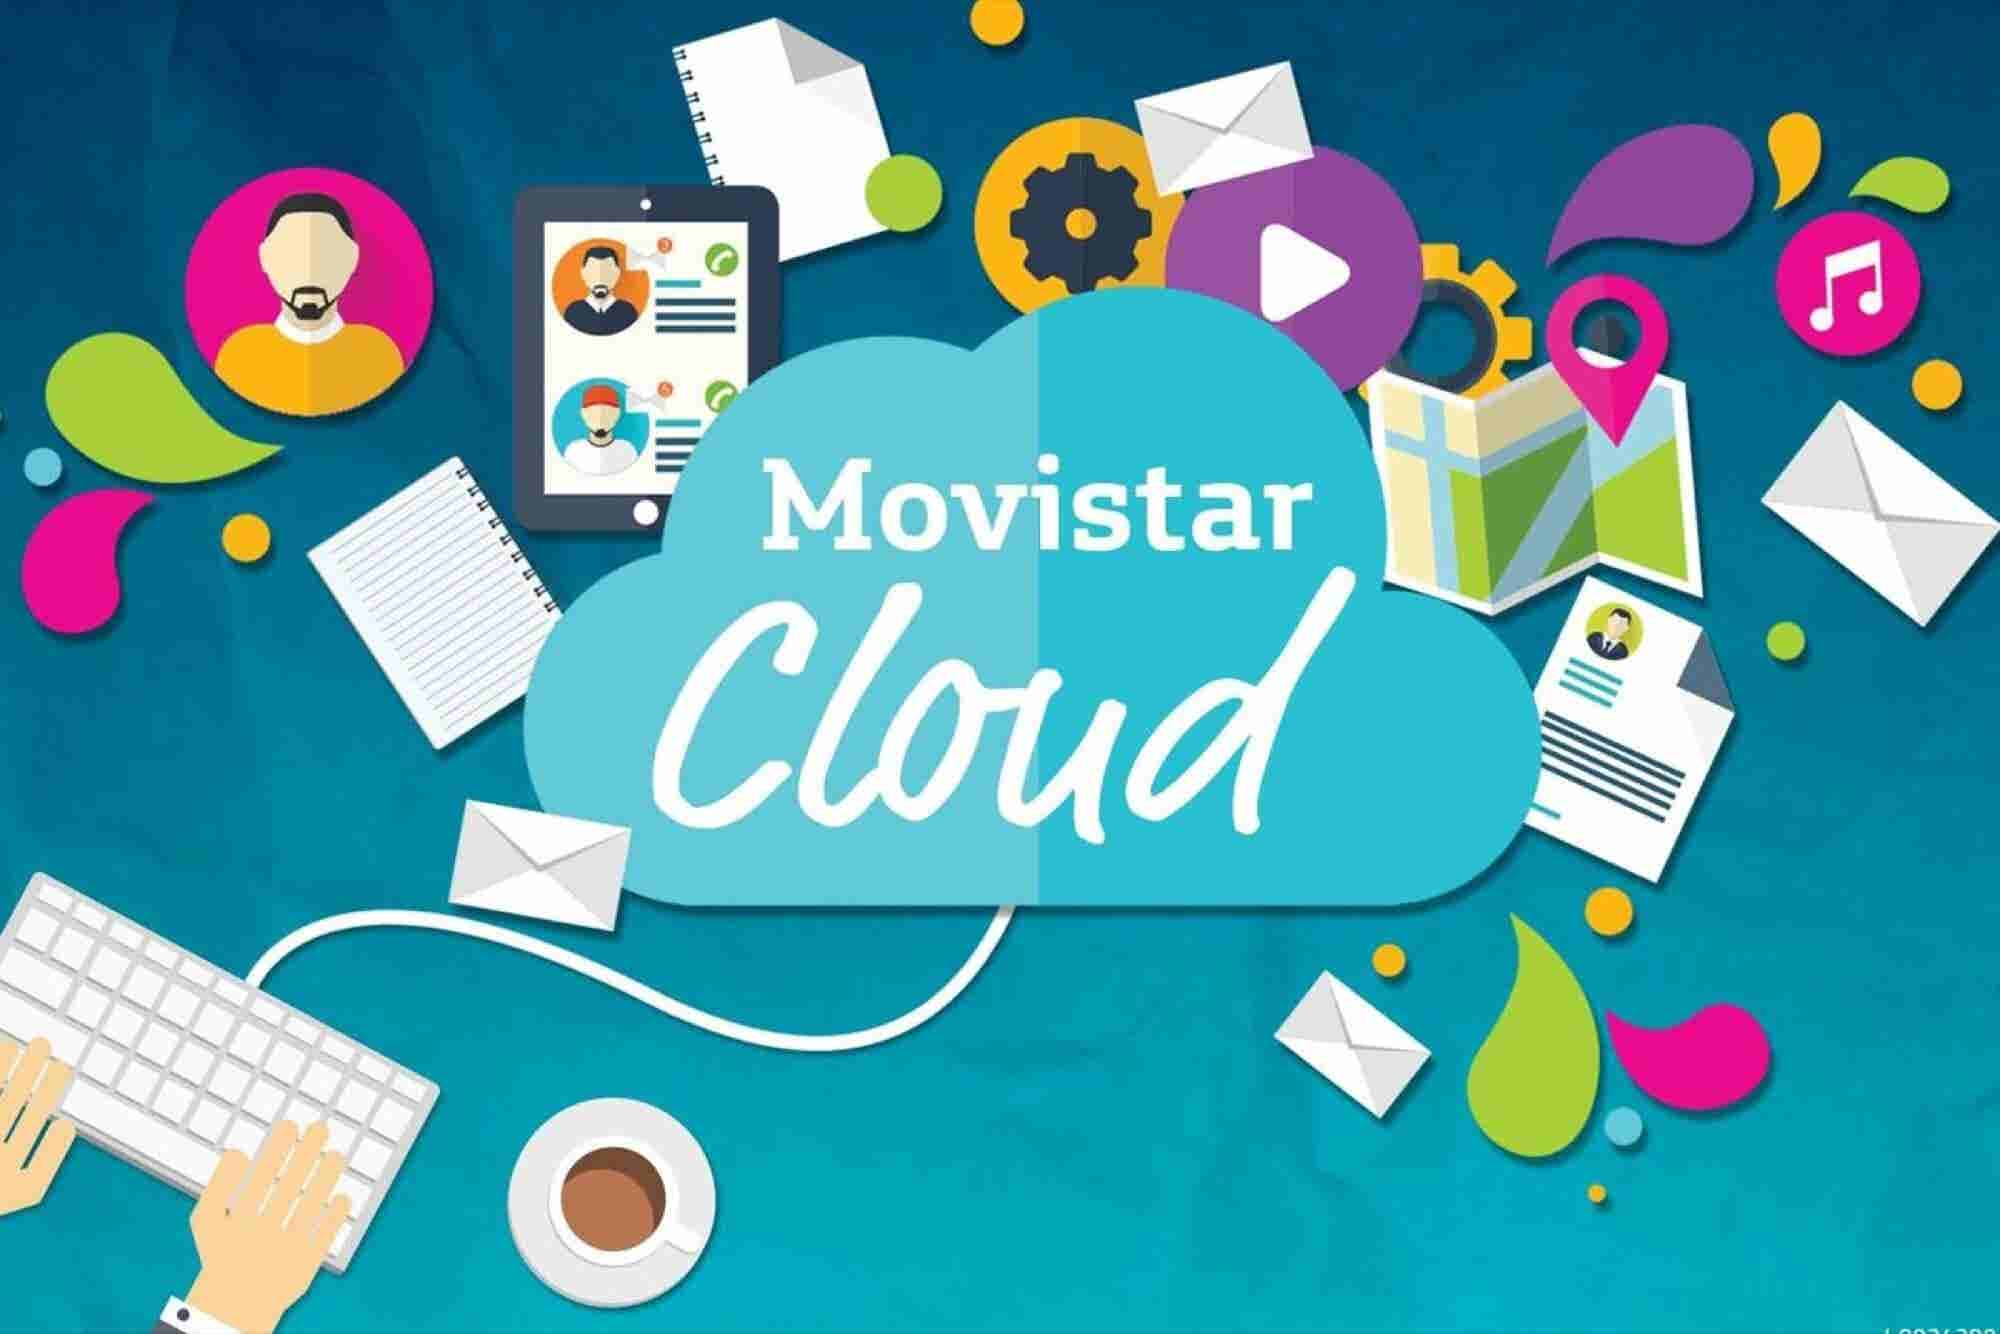 Movistar Open Cloud, la nube para las PYMES